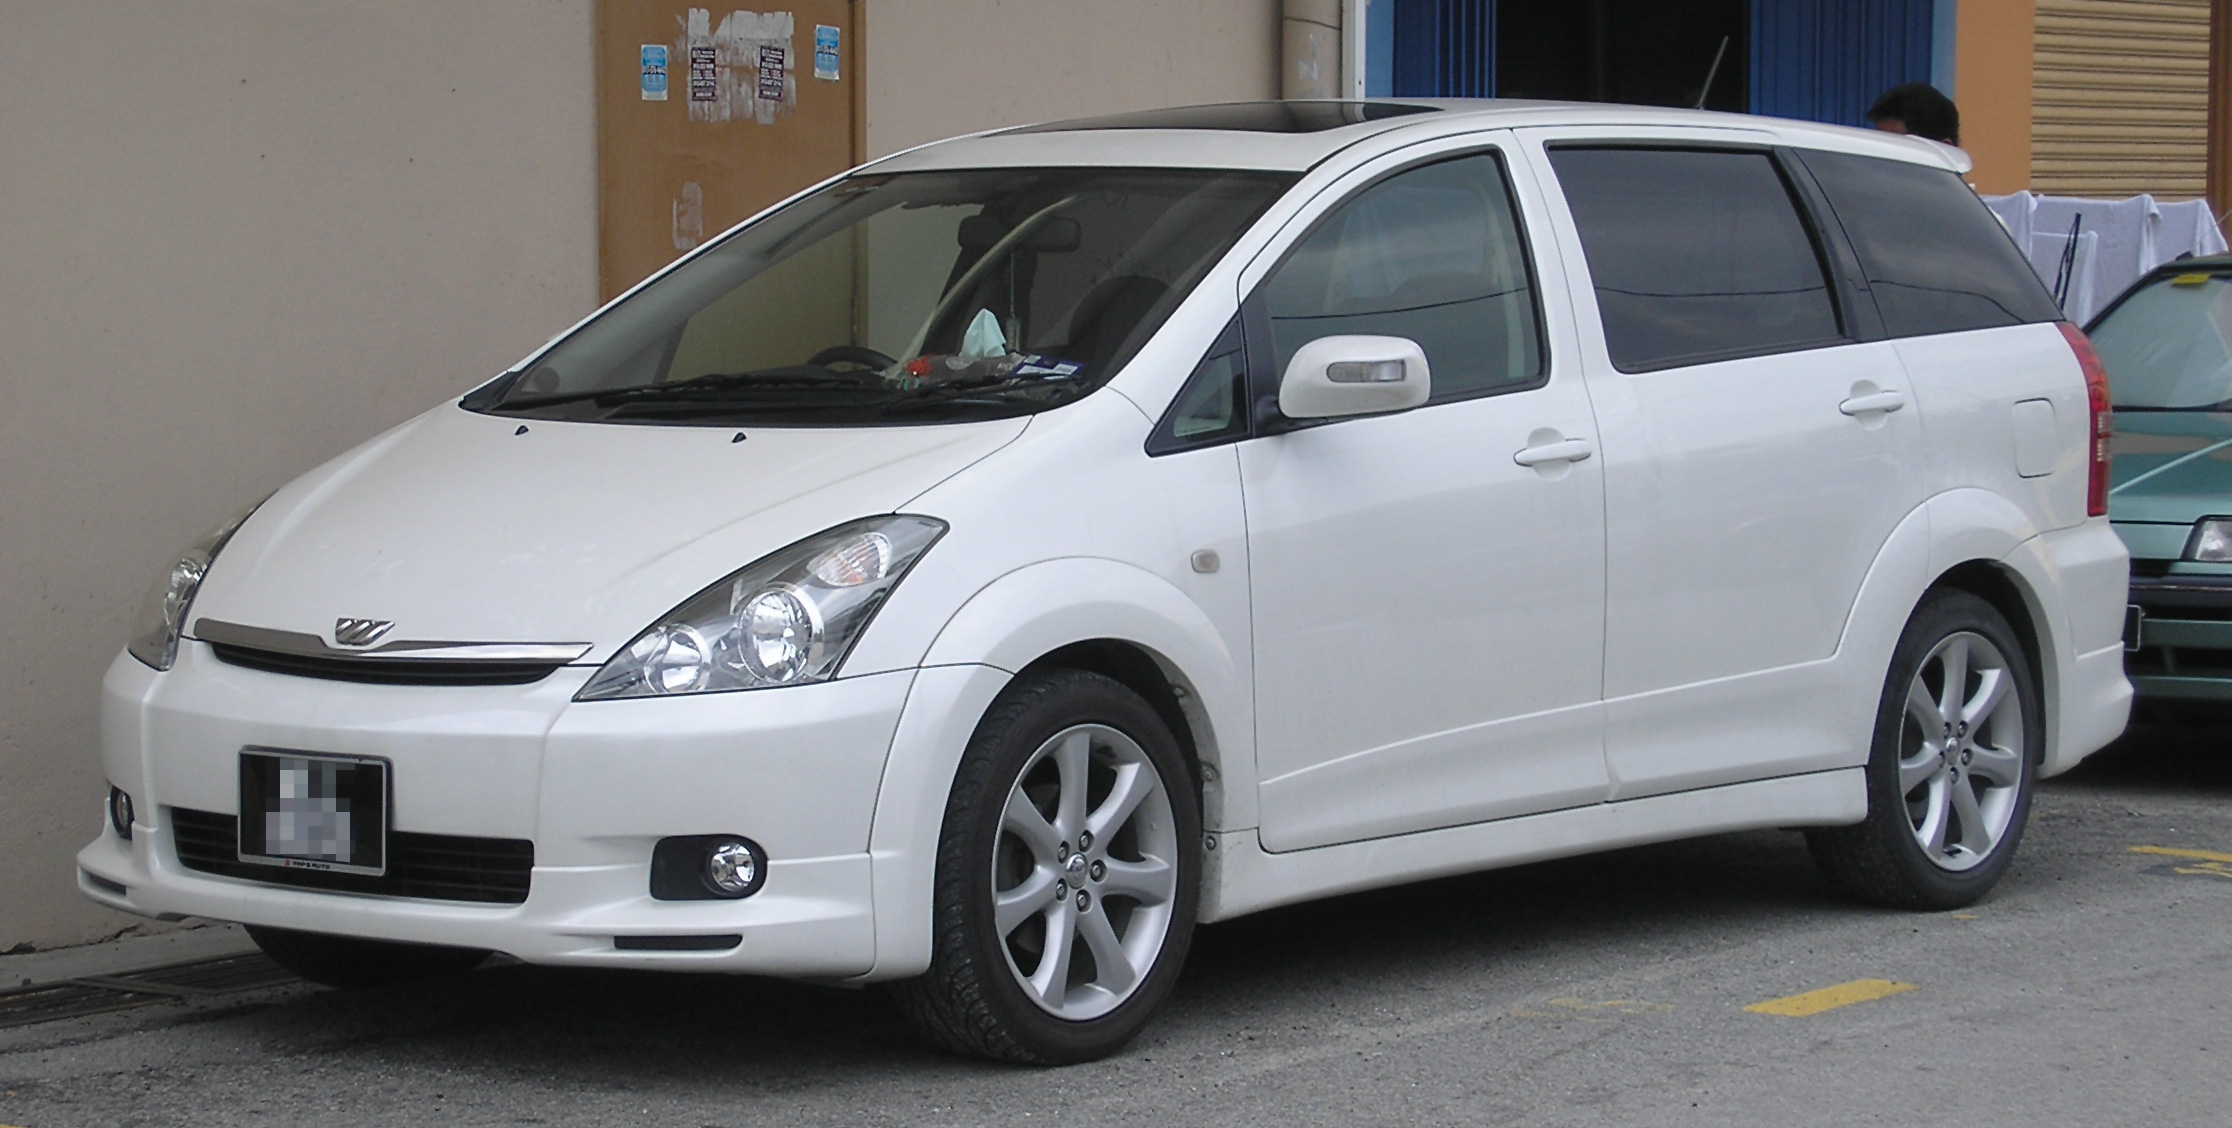 Toyota Wish 2007 Review Amazing Pictures And Images